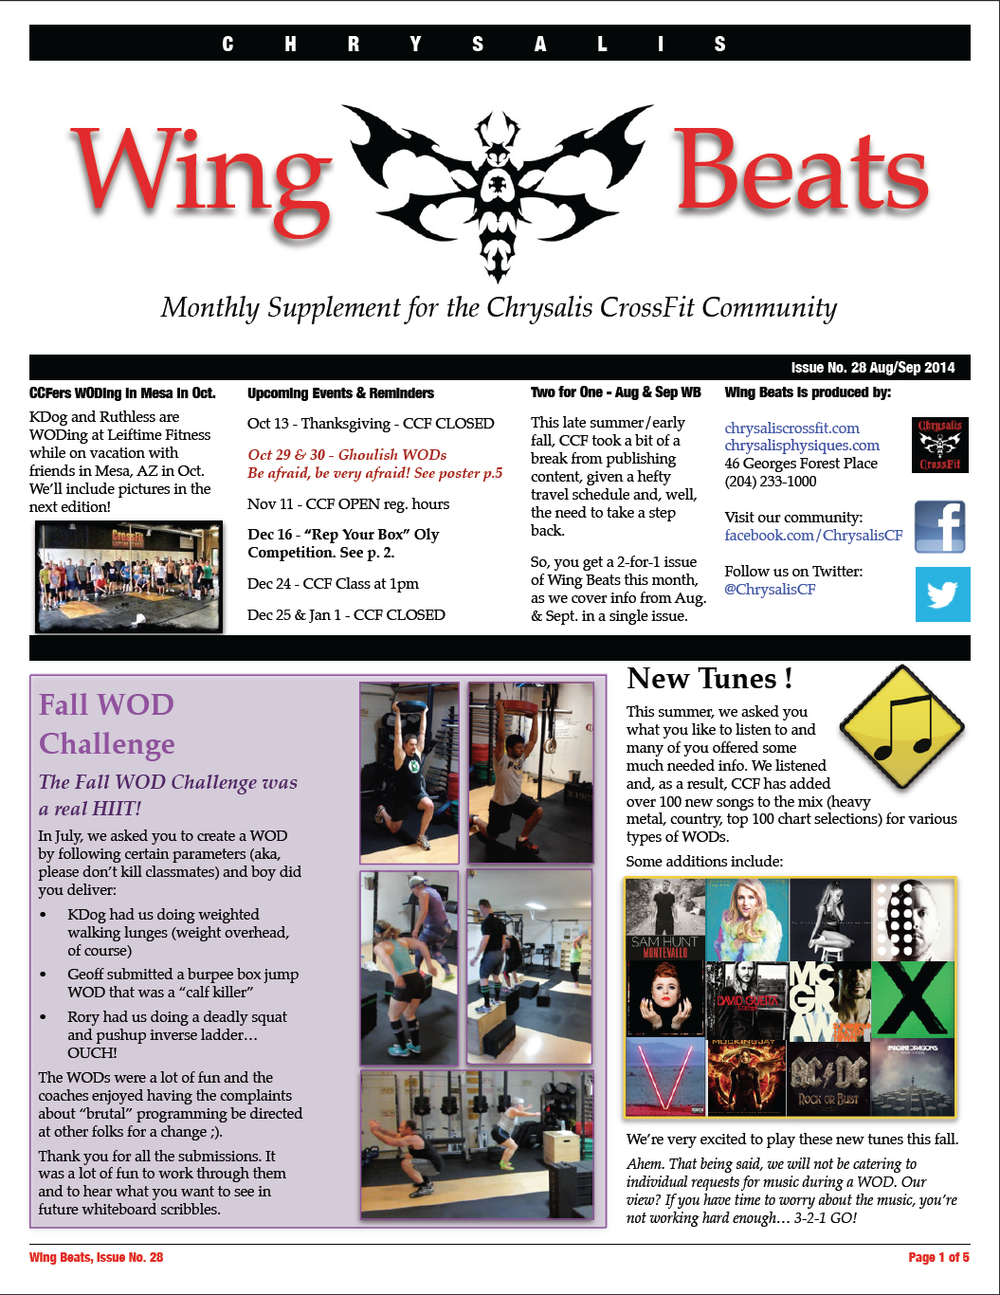 WingBeats Issue #28 - AugSept 2014